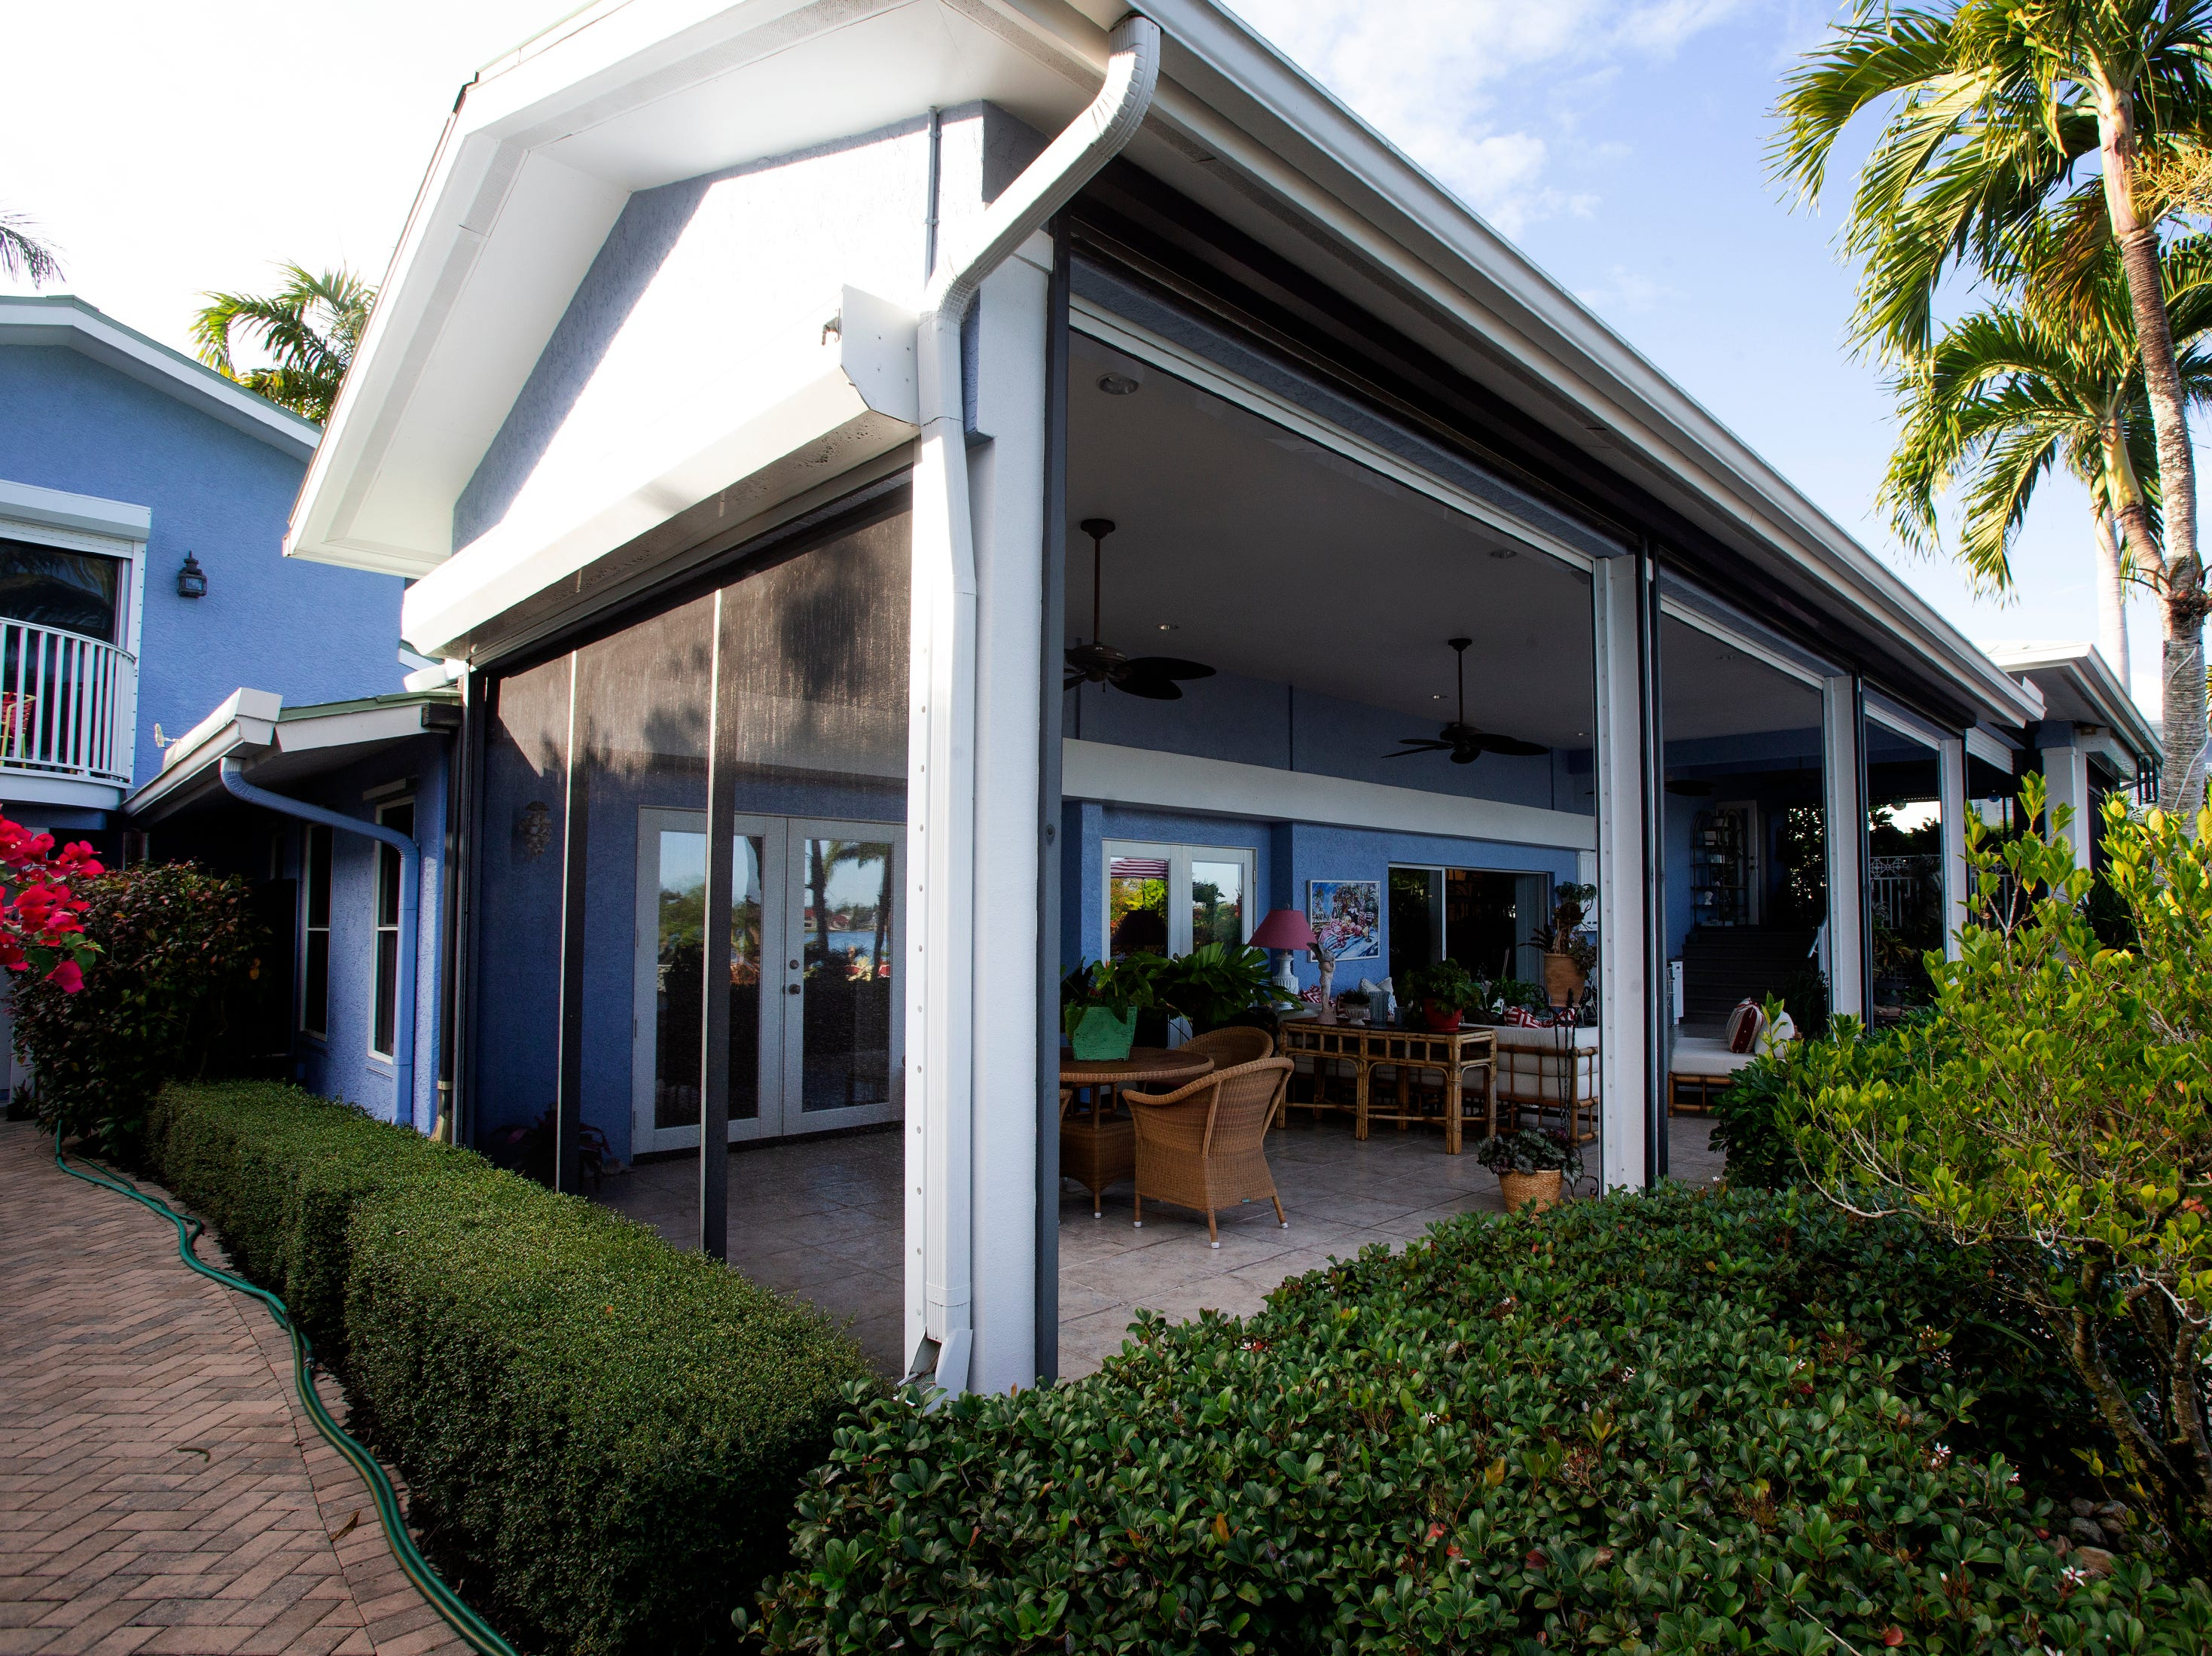 The back of a waterfront Aqualane Shores home which will be featured in the Naples House and Garden Tour is pictured, Thursday, Jan. 25, 2019, in Naples.